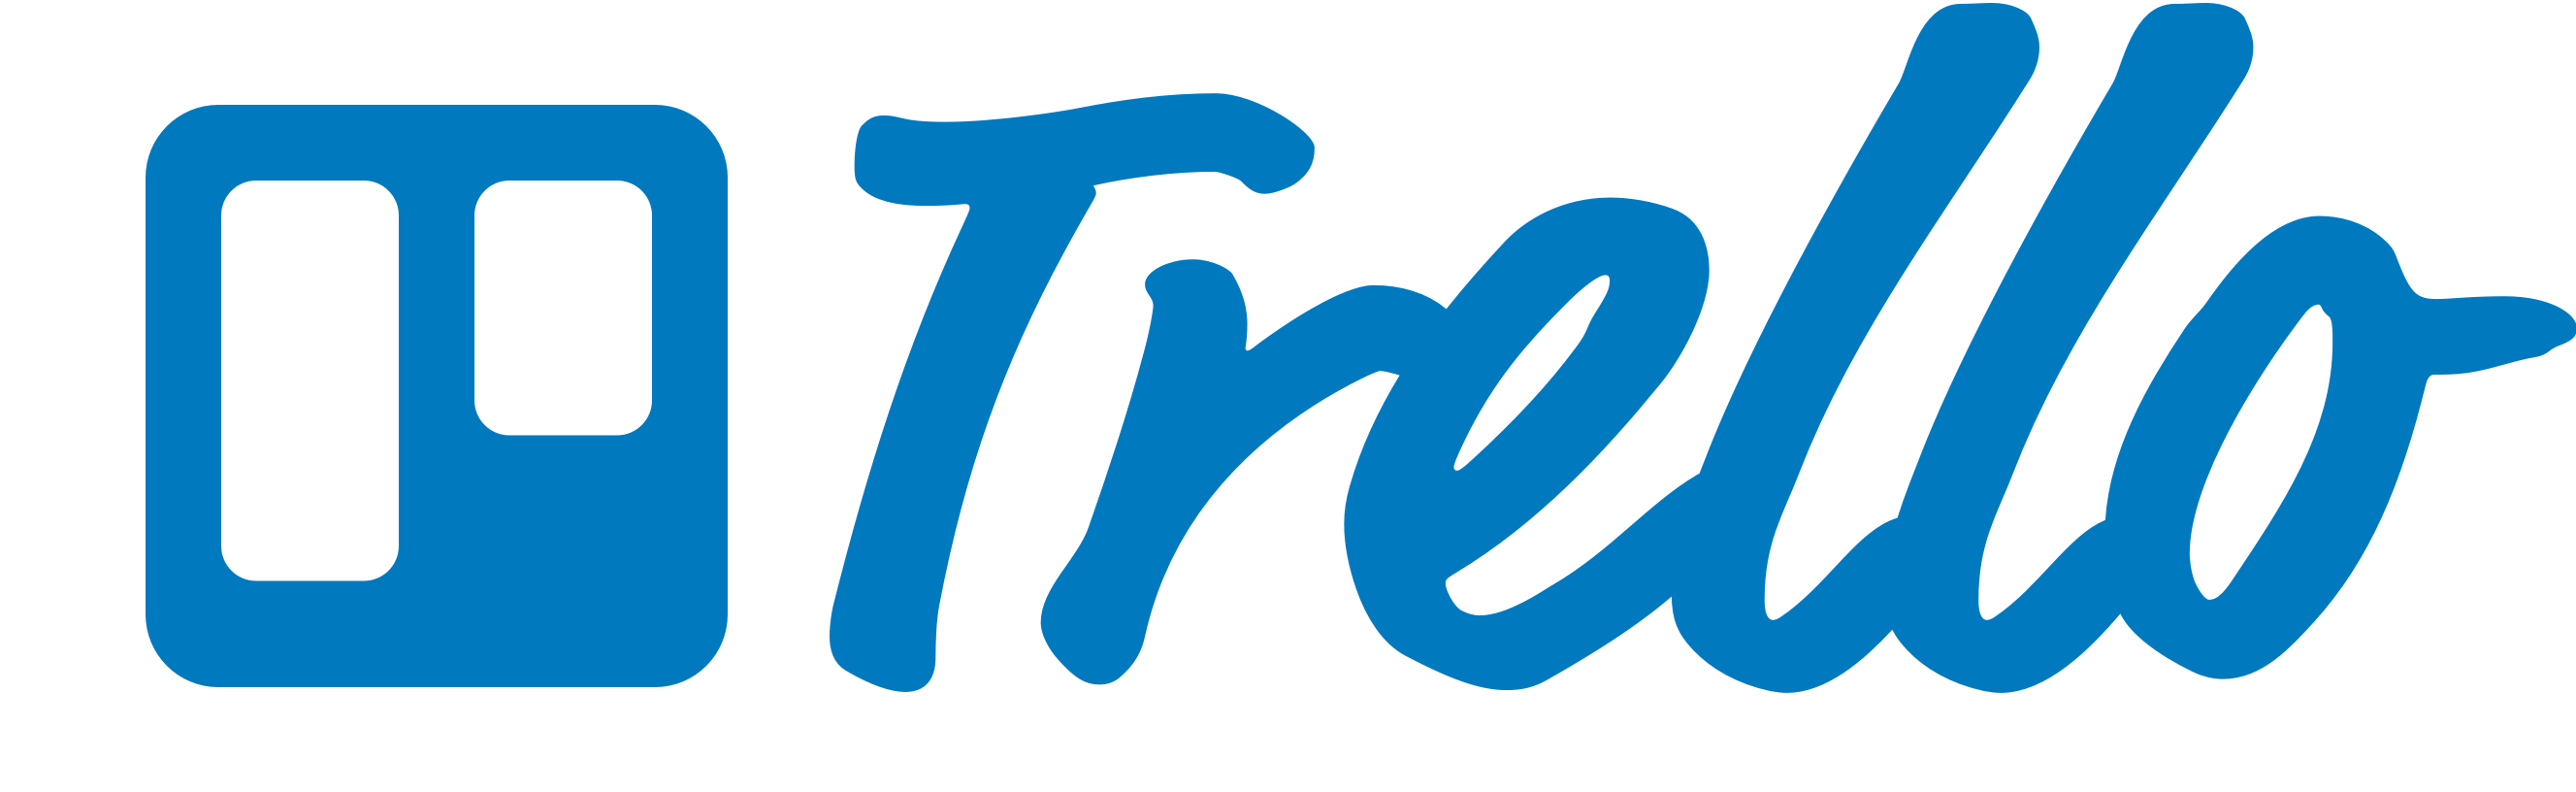 Trello resource planning integration with Float logo